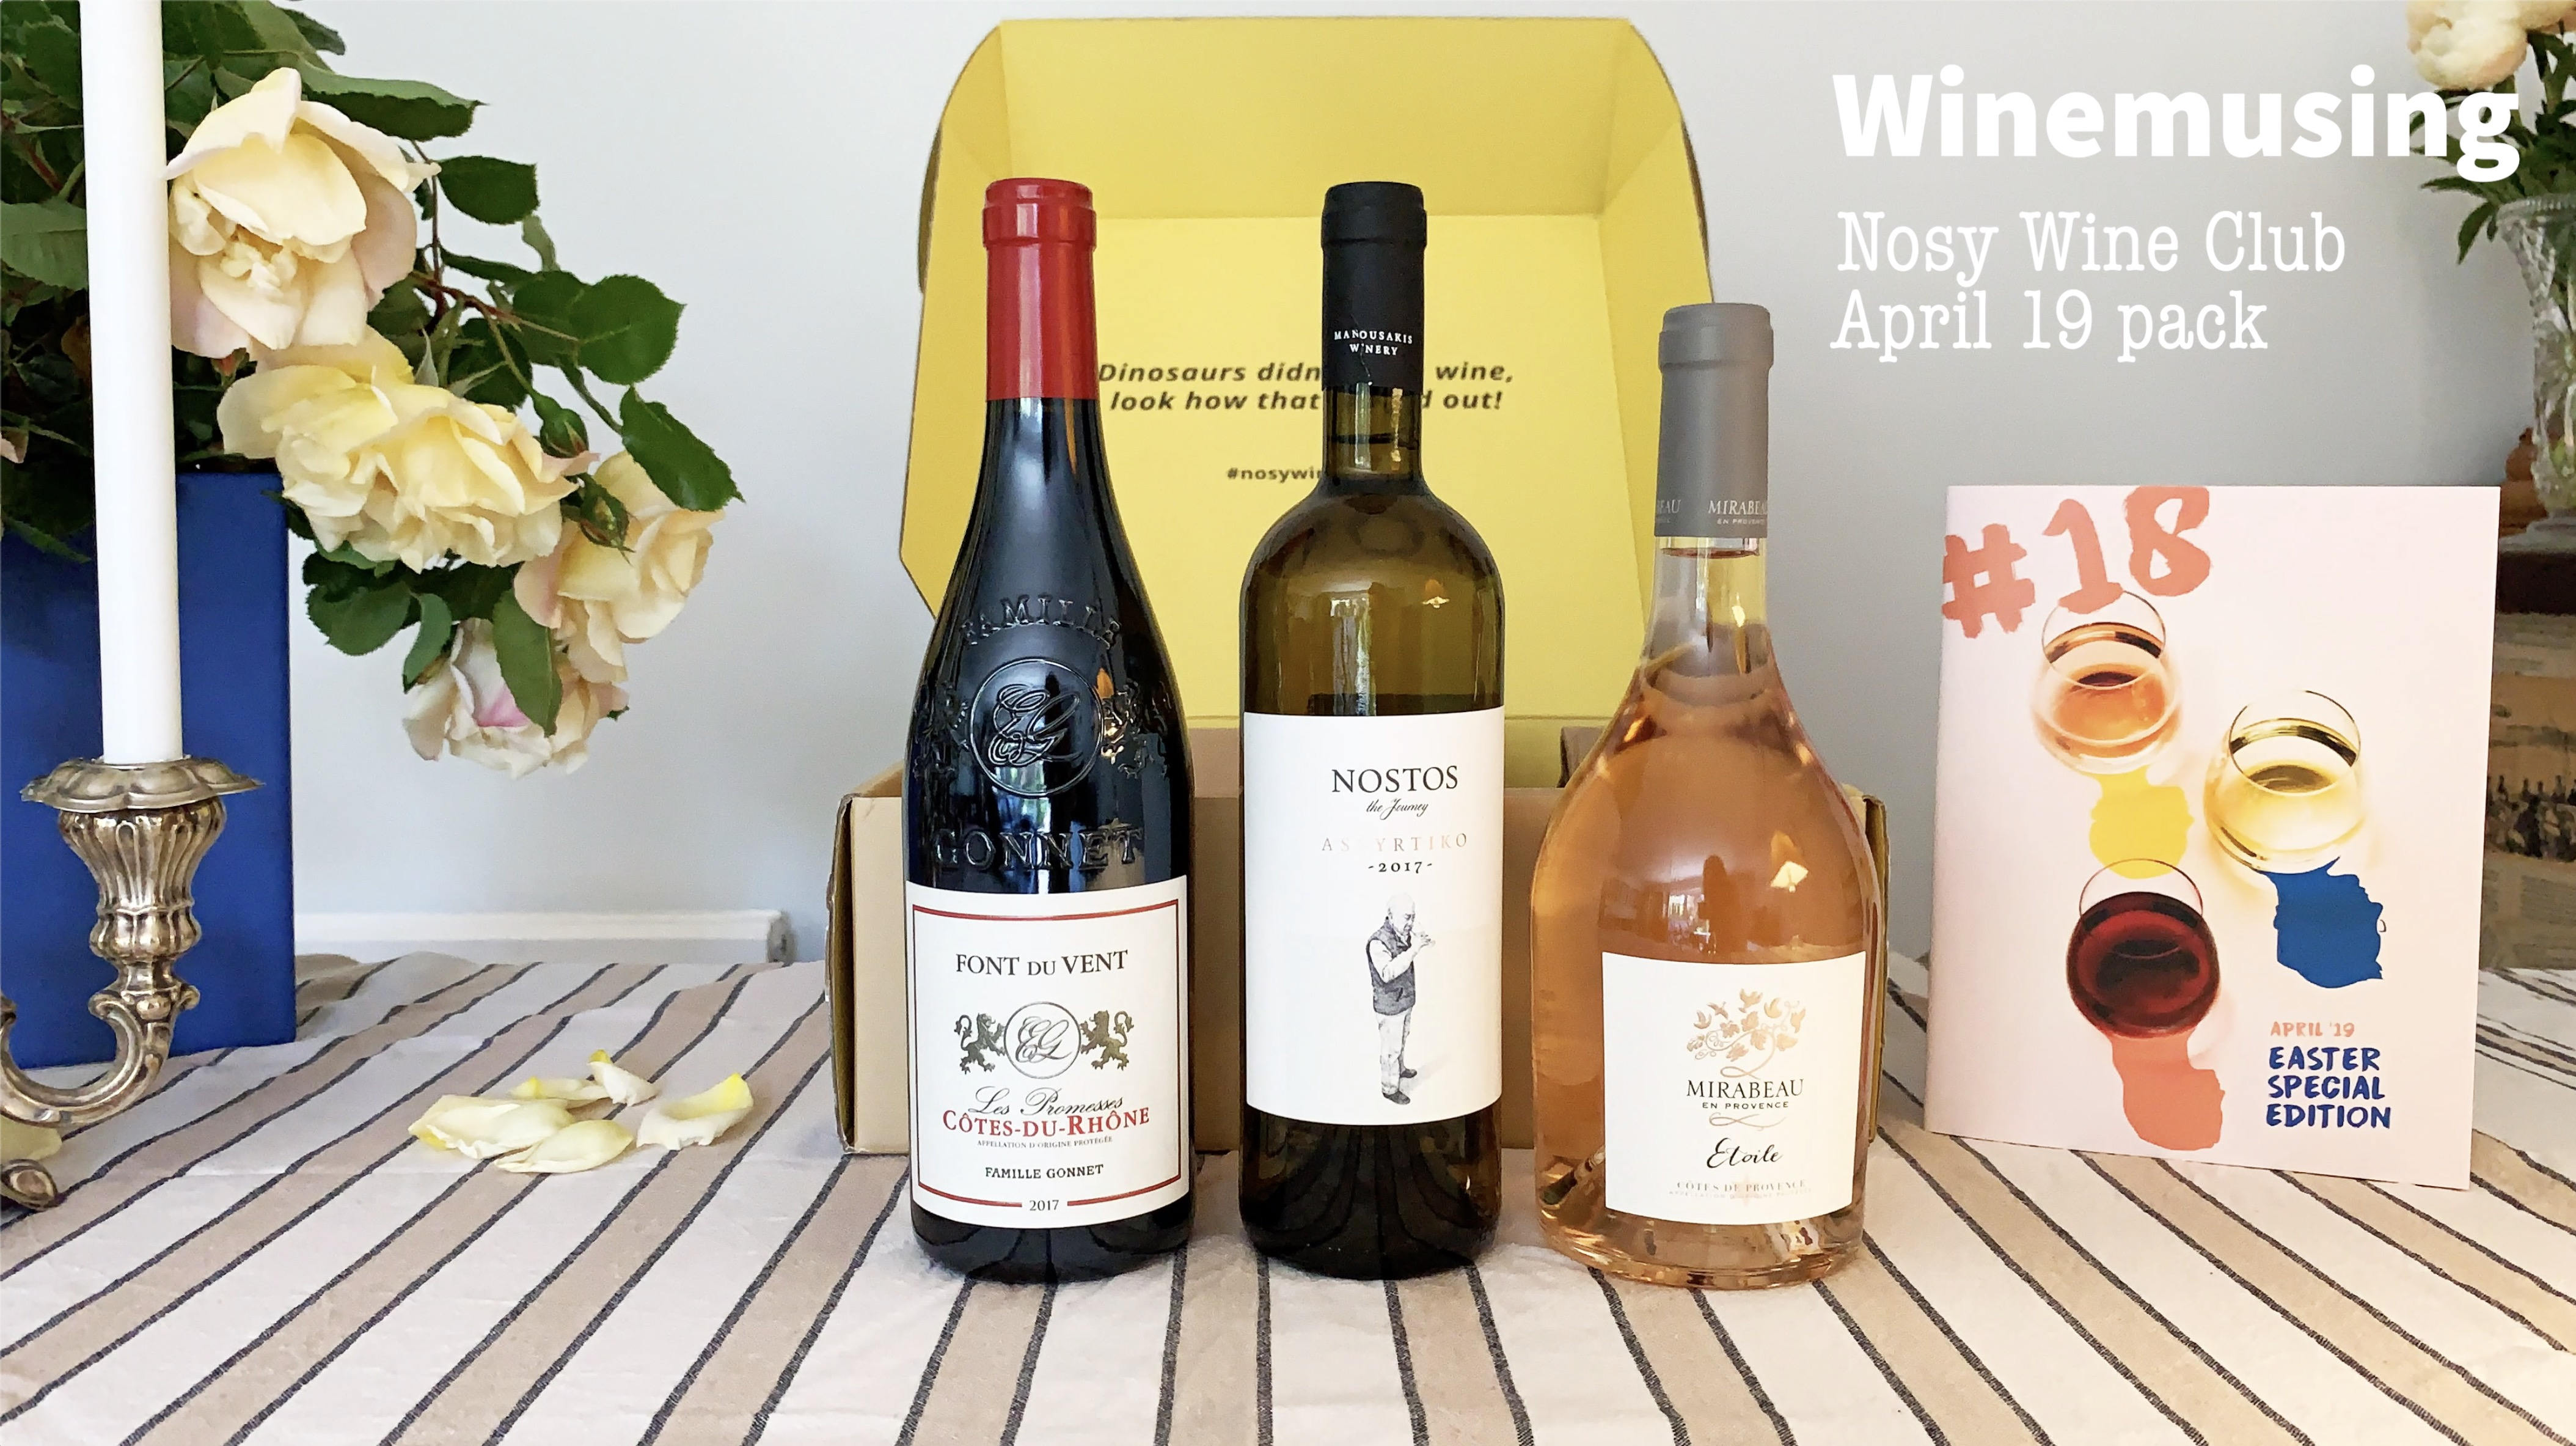 Unboxing the Nosy Wine Club April 19 Subscription box!